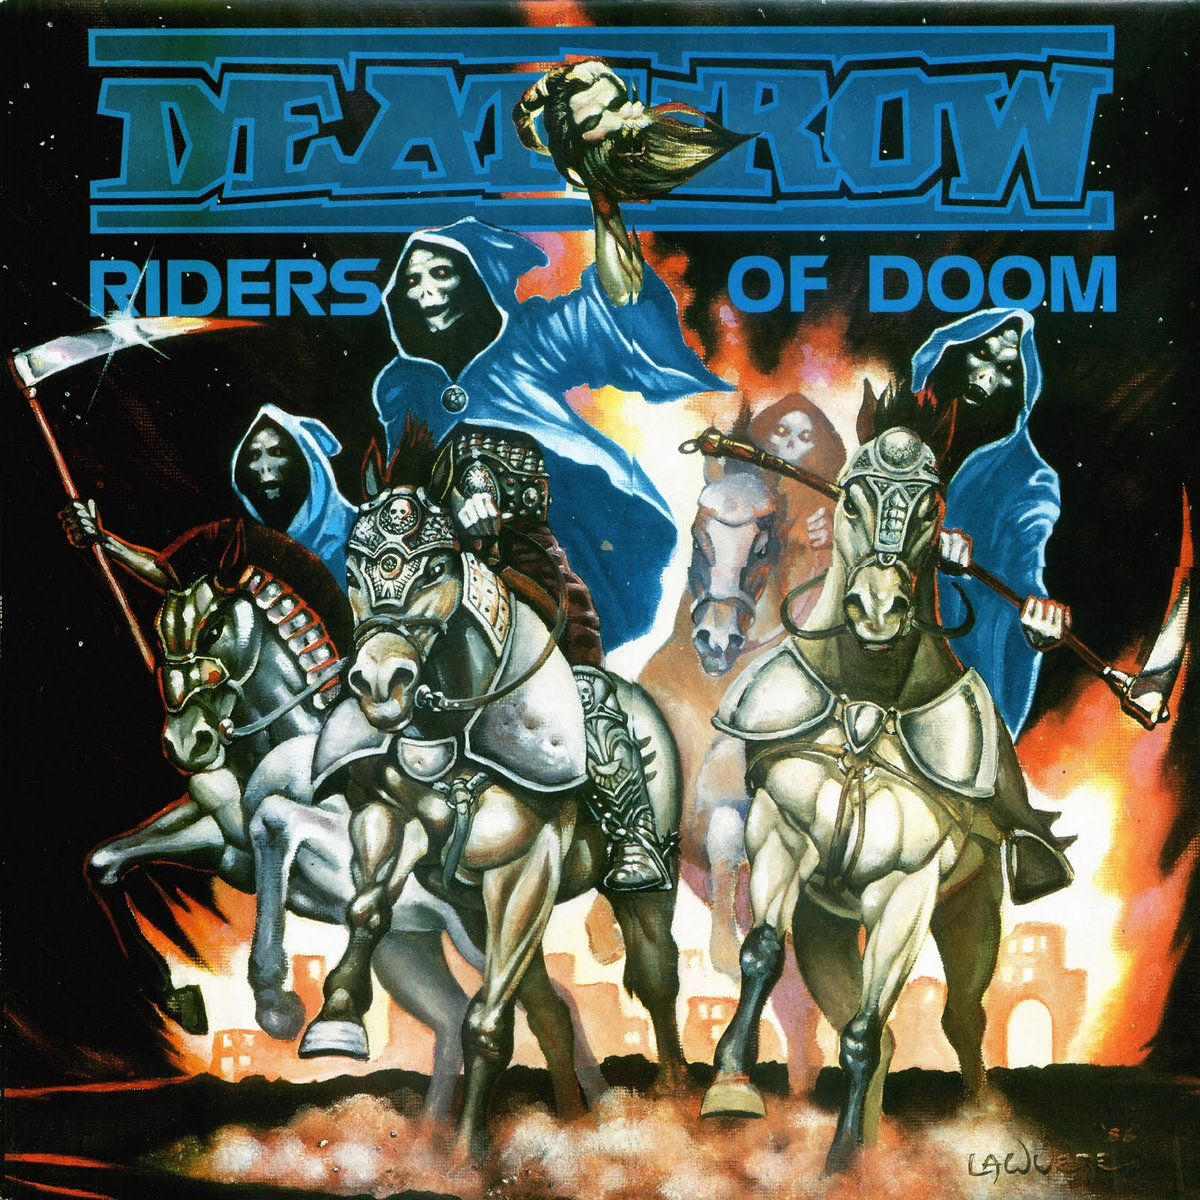 Riders of doom | antipeewee.